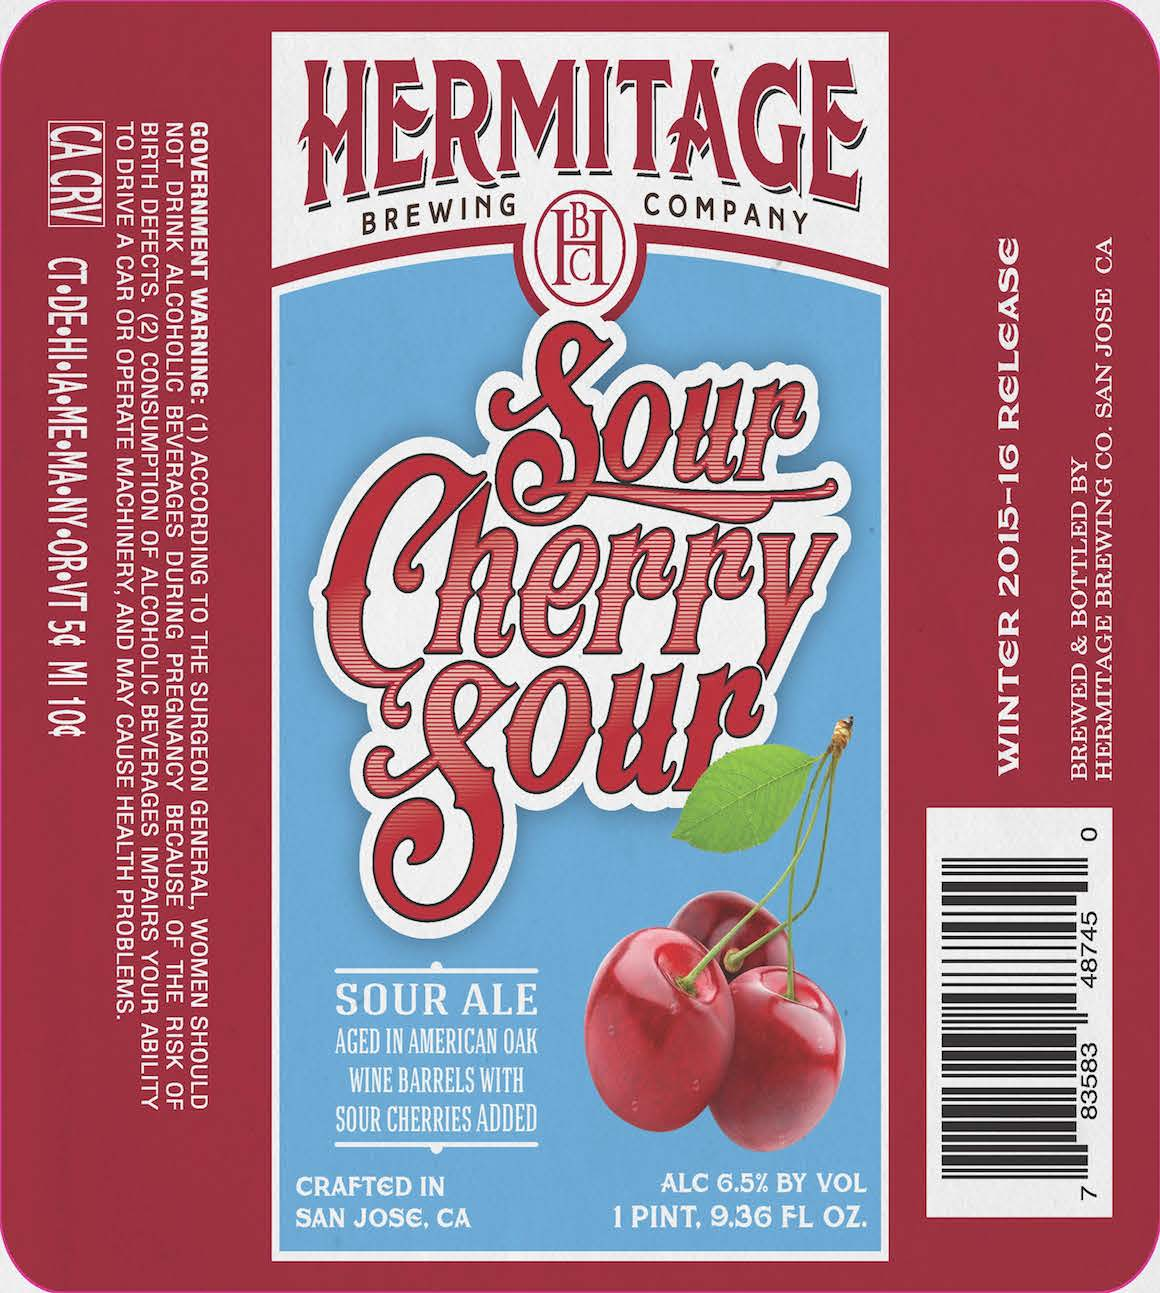 Hermitage Brewing Company Sour Cherry Sour Ale